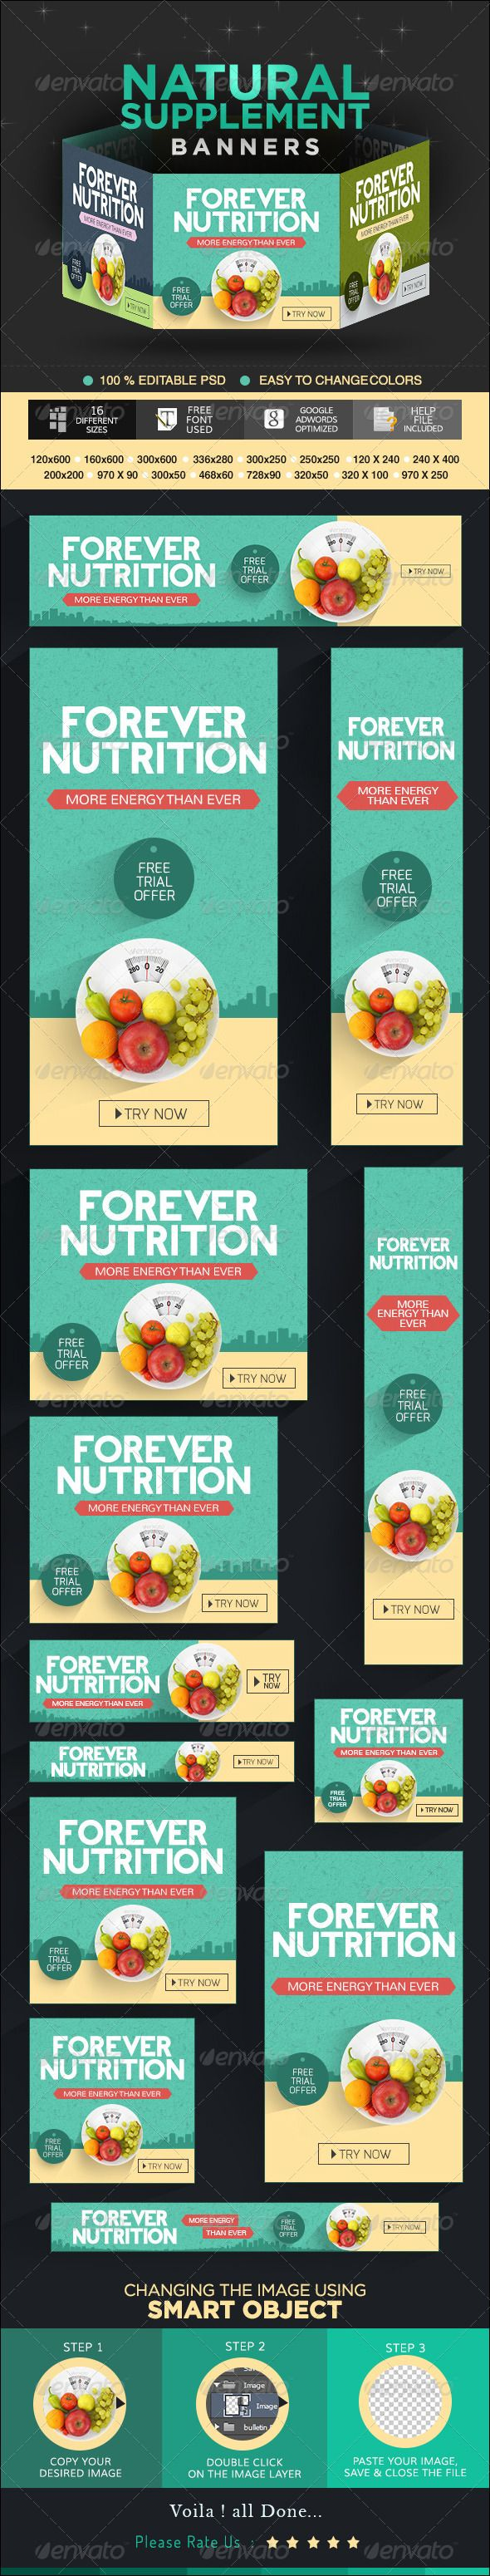 94 best web banners images on Pinterest | Banner template, Banner ...